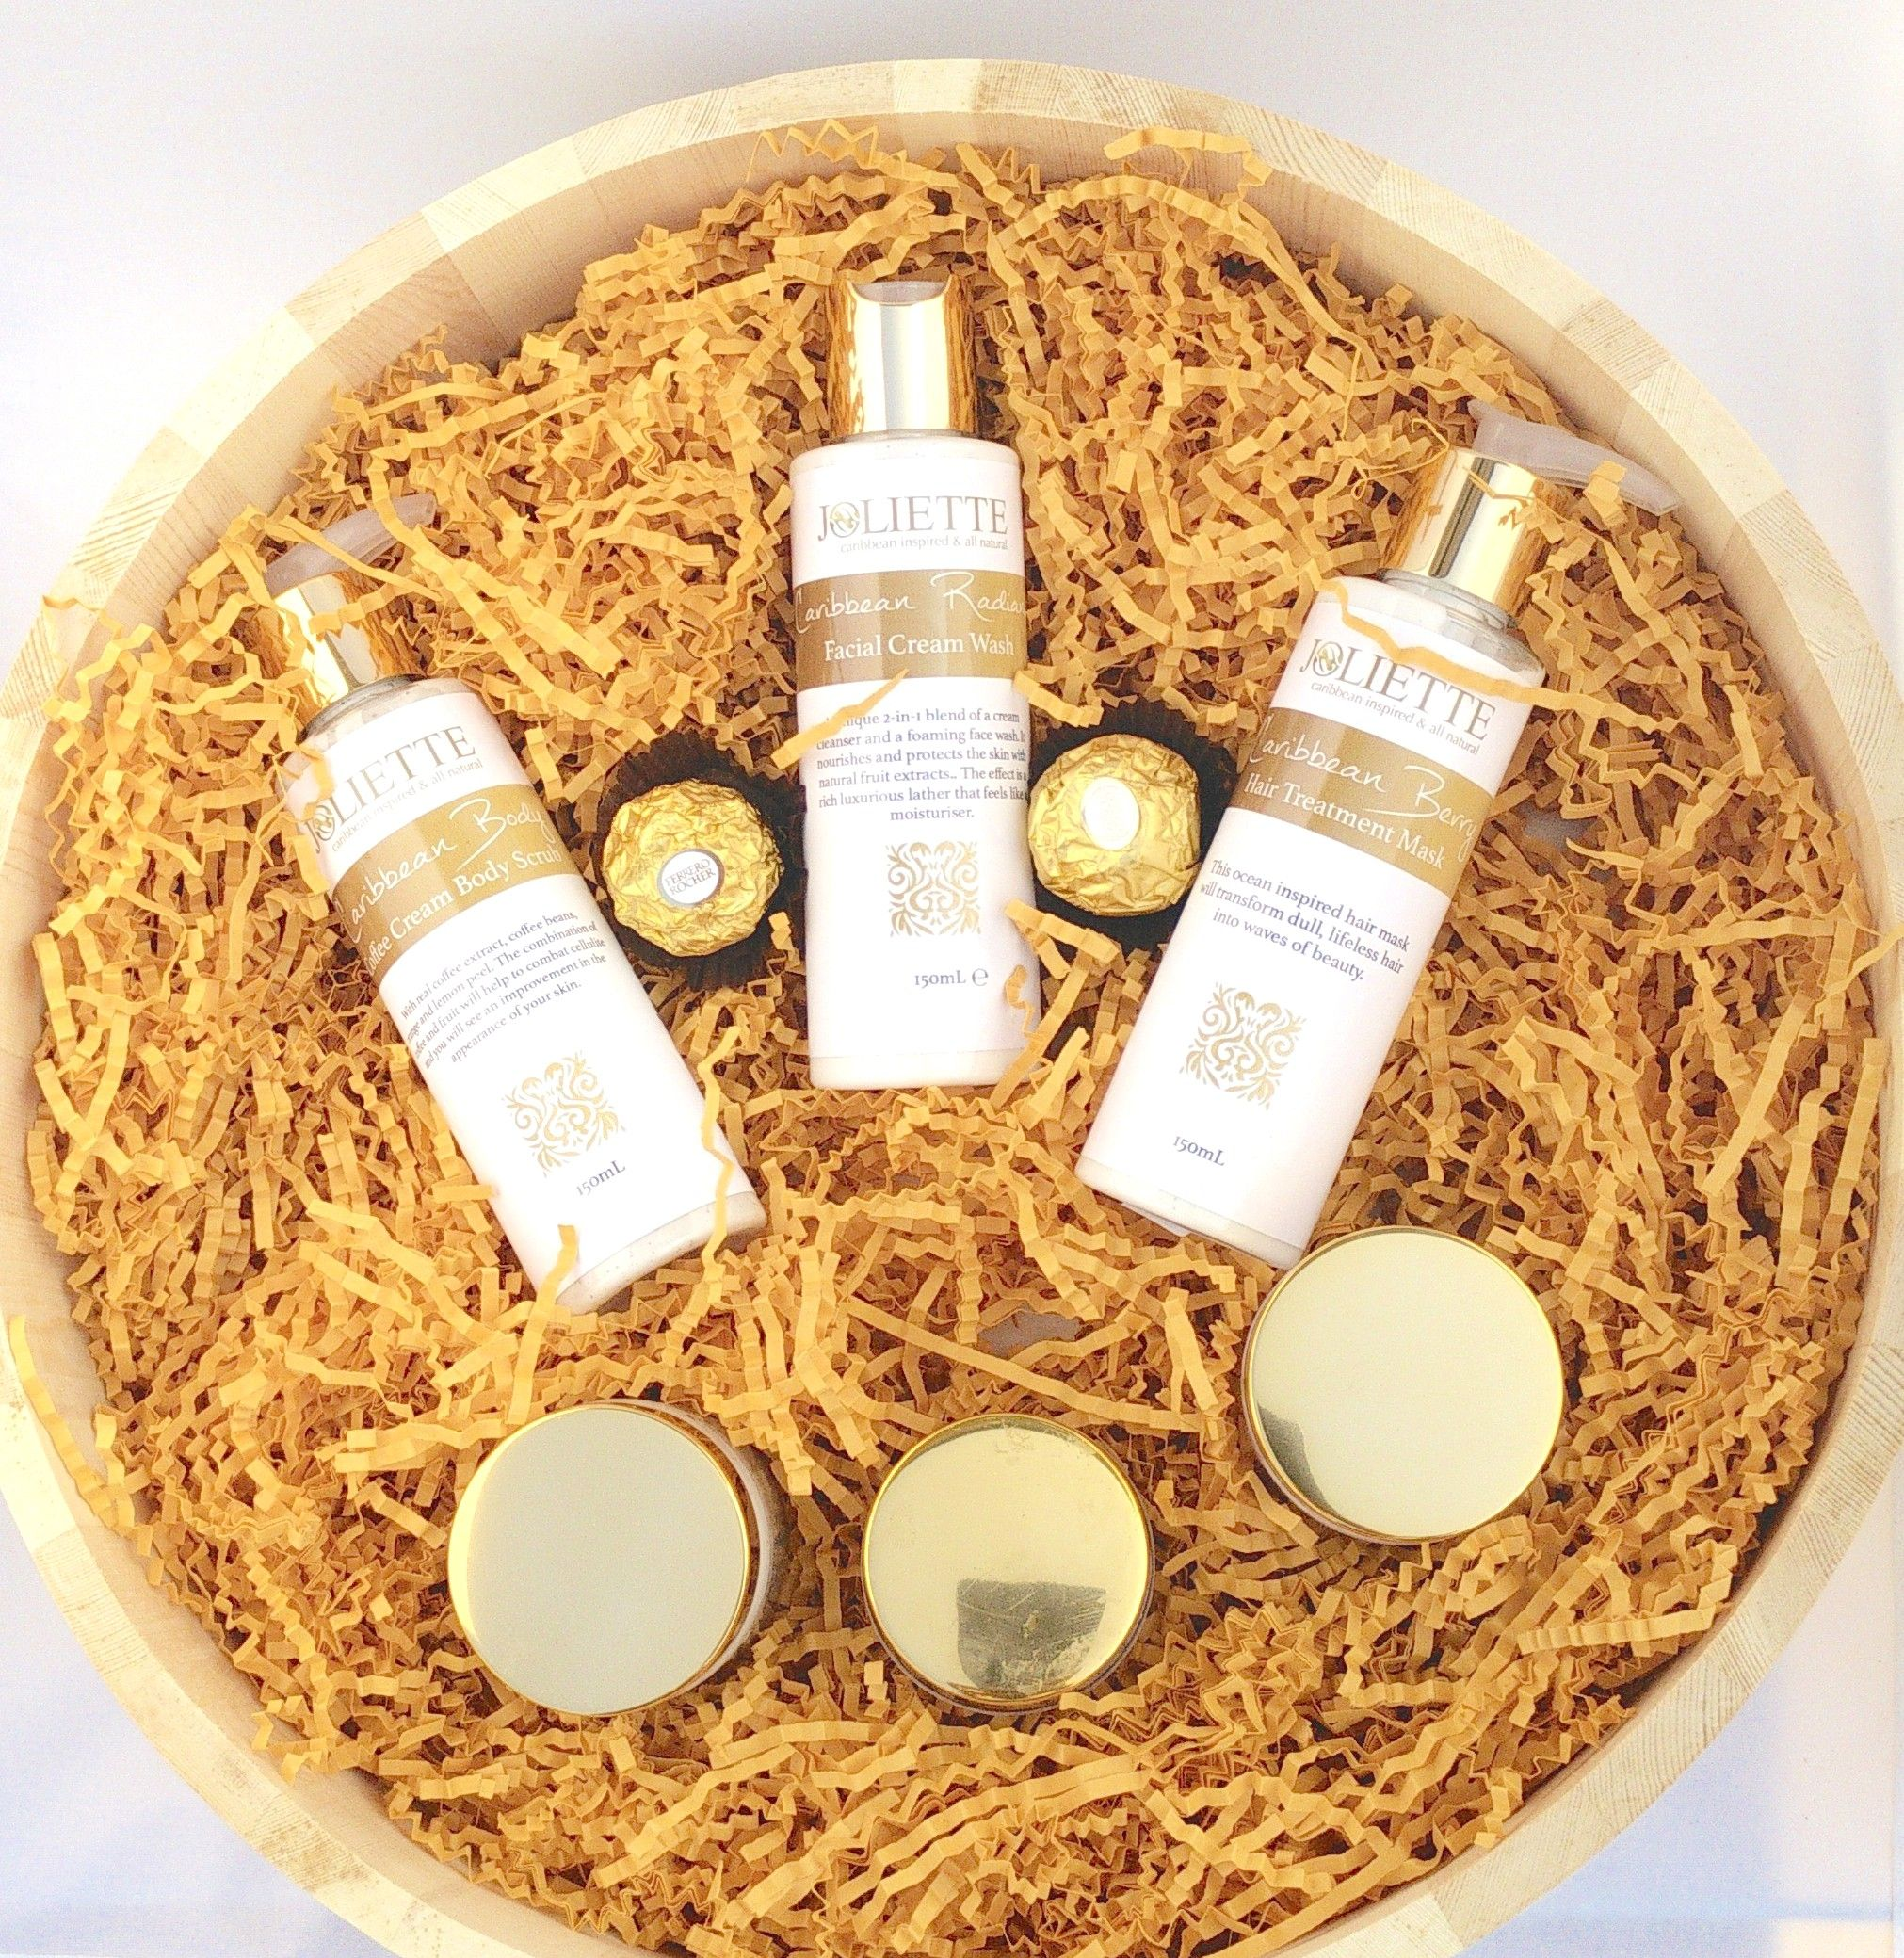 our largest circular hamper from joliette £70. 6 products! http